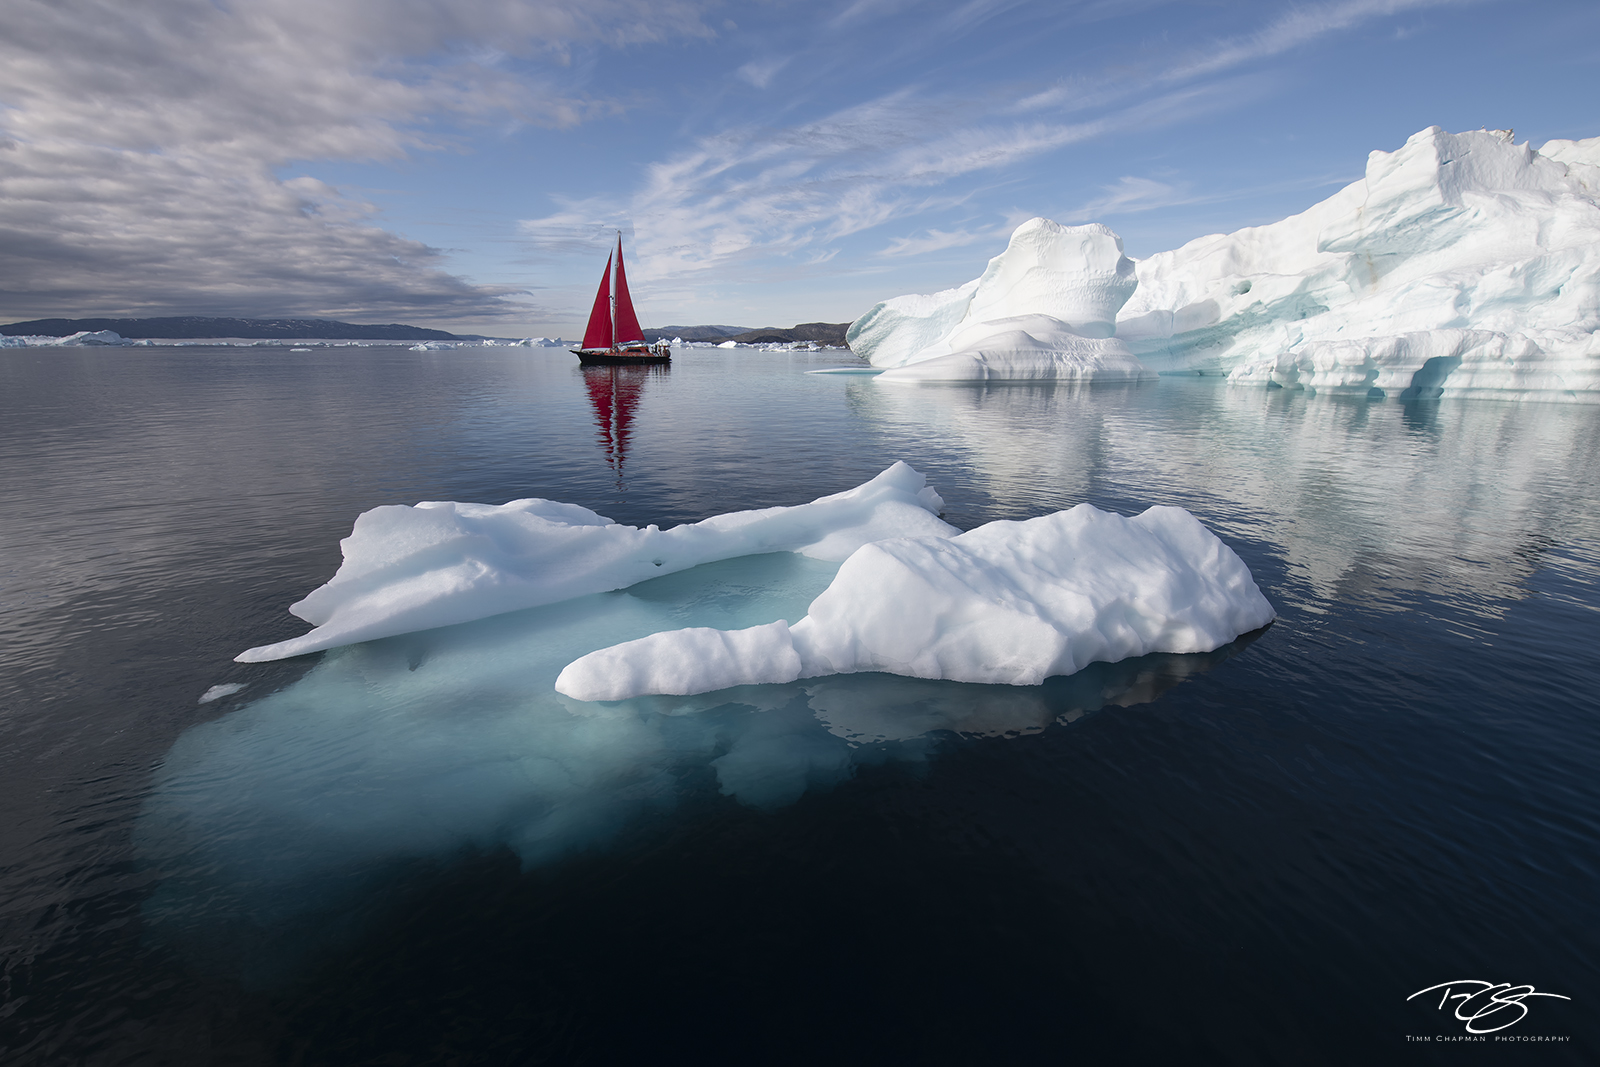 reflection; cloudy; blue; ice visible underwater; iceberg visible underwater; scarlet sails, ice; iceberg; disko bay, sailboat; sailing; schooner; red sails, photo